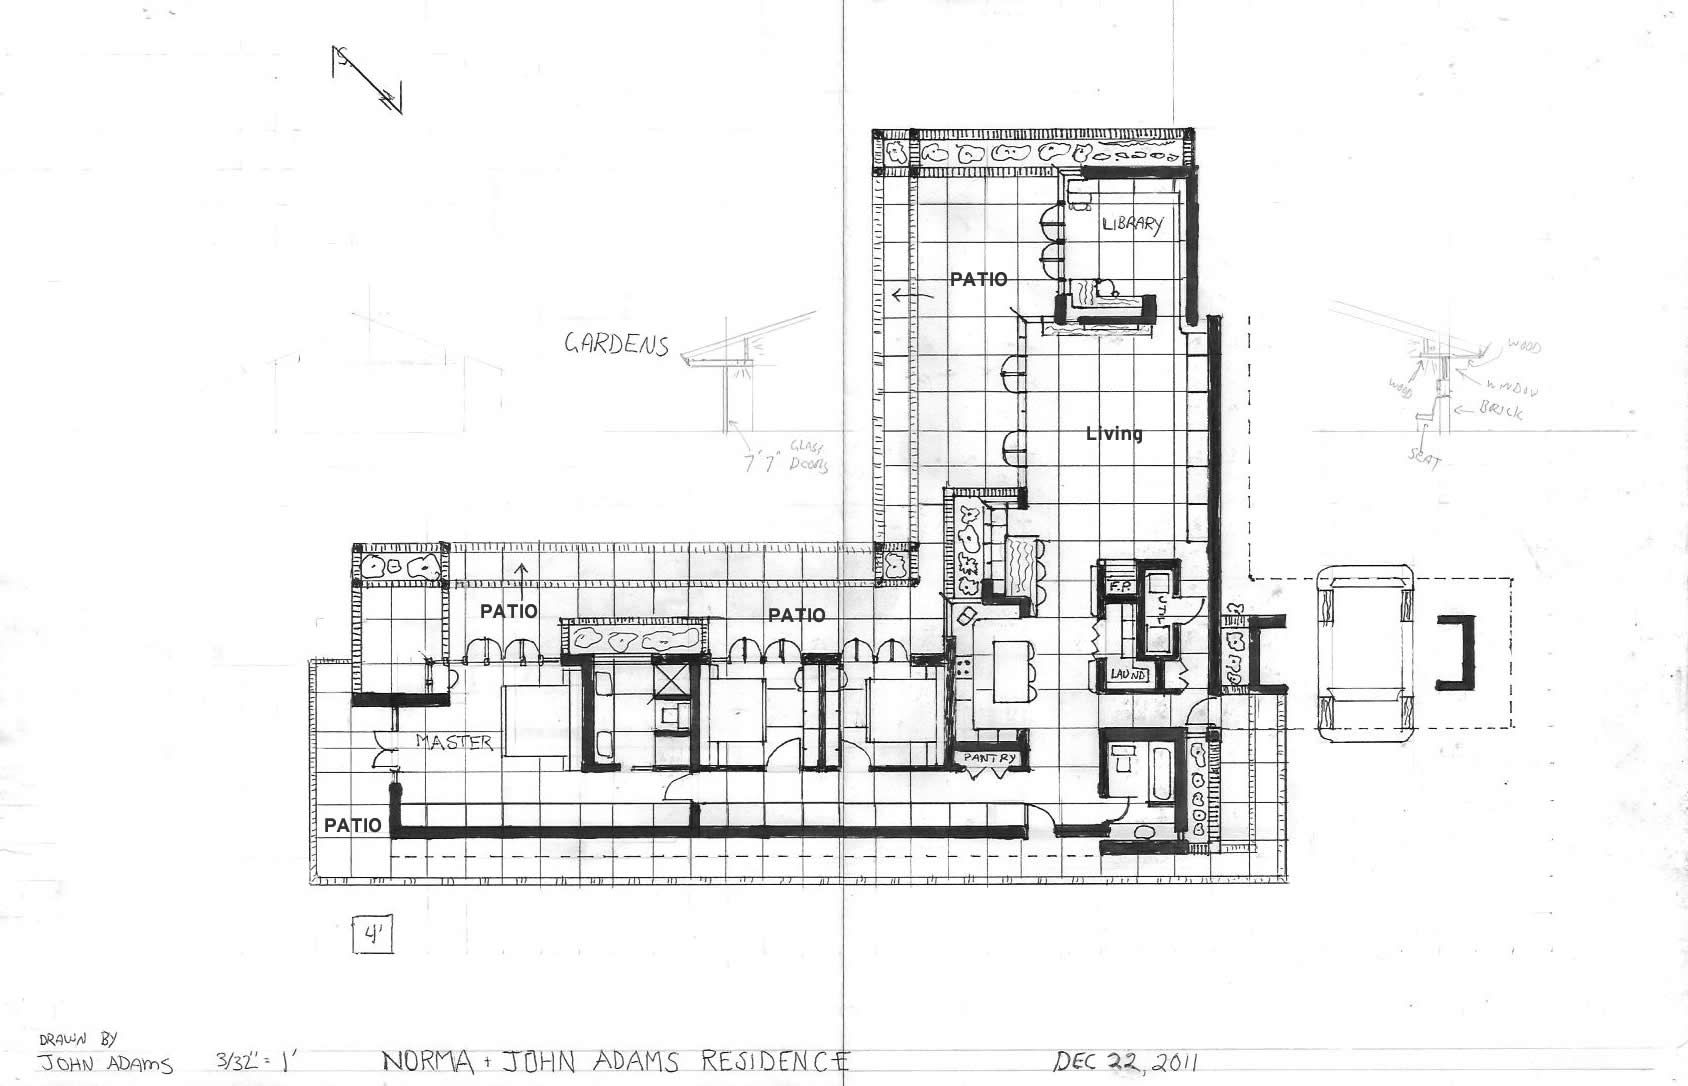 Plan houses design frank lloyd wright pesquisa google for Frank lloyd wright usonian home plans